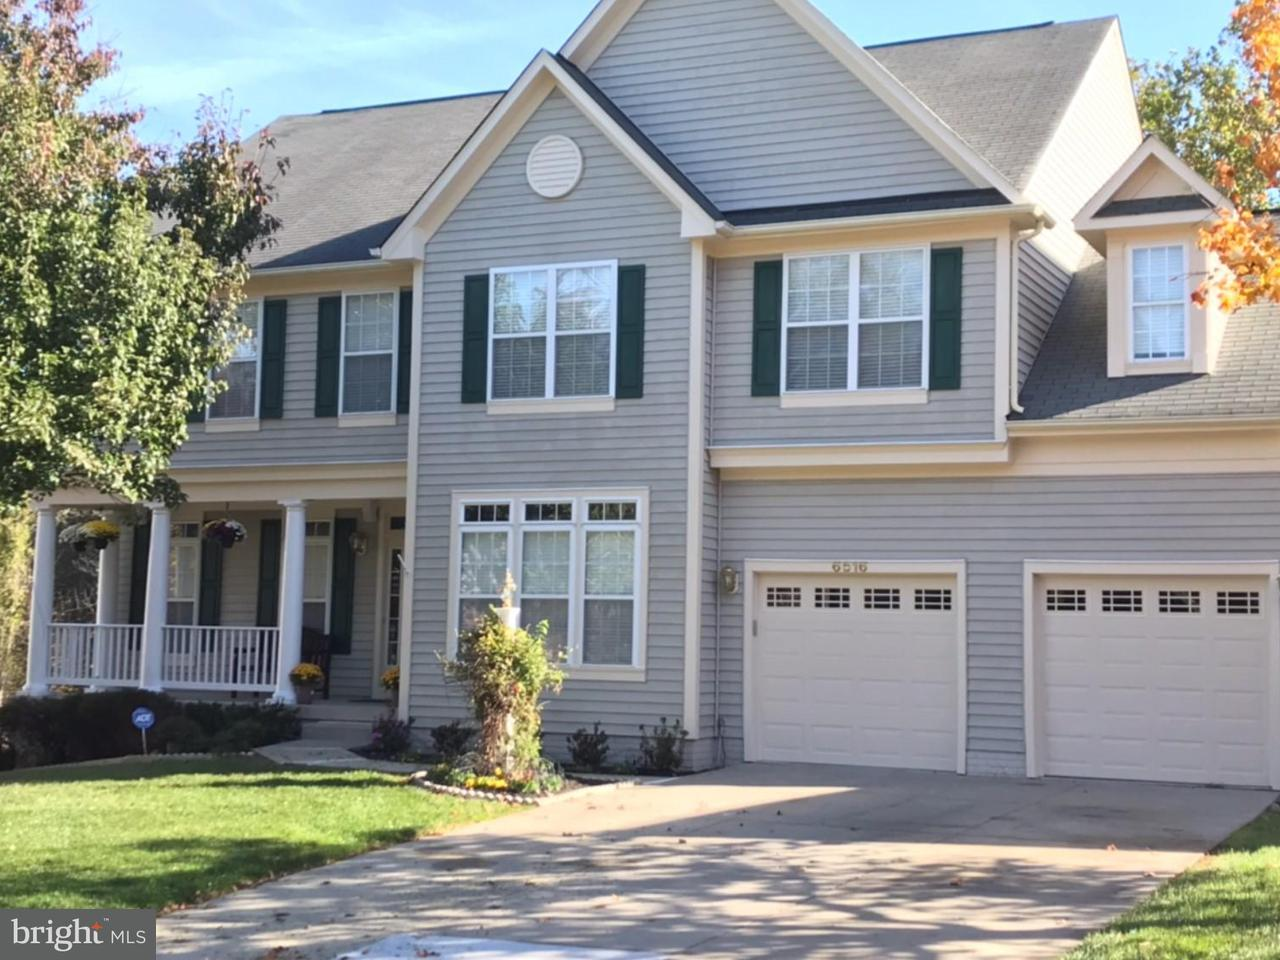 Single Family Home for Sale at 6516 EARLY LILY ROW 6516 EARLY LILY ROW Columbia, Maryland 21044 United States